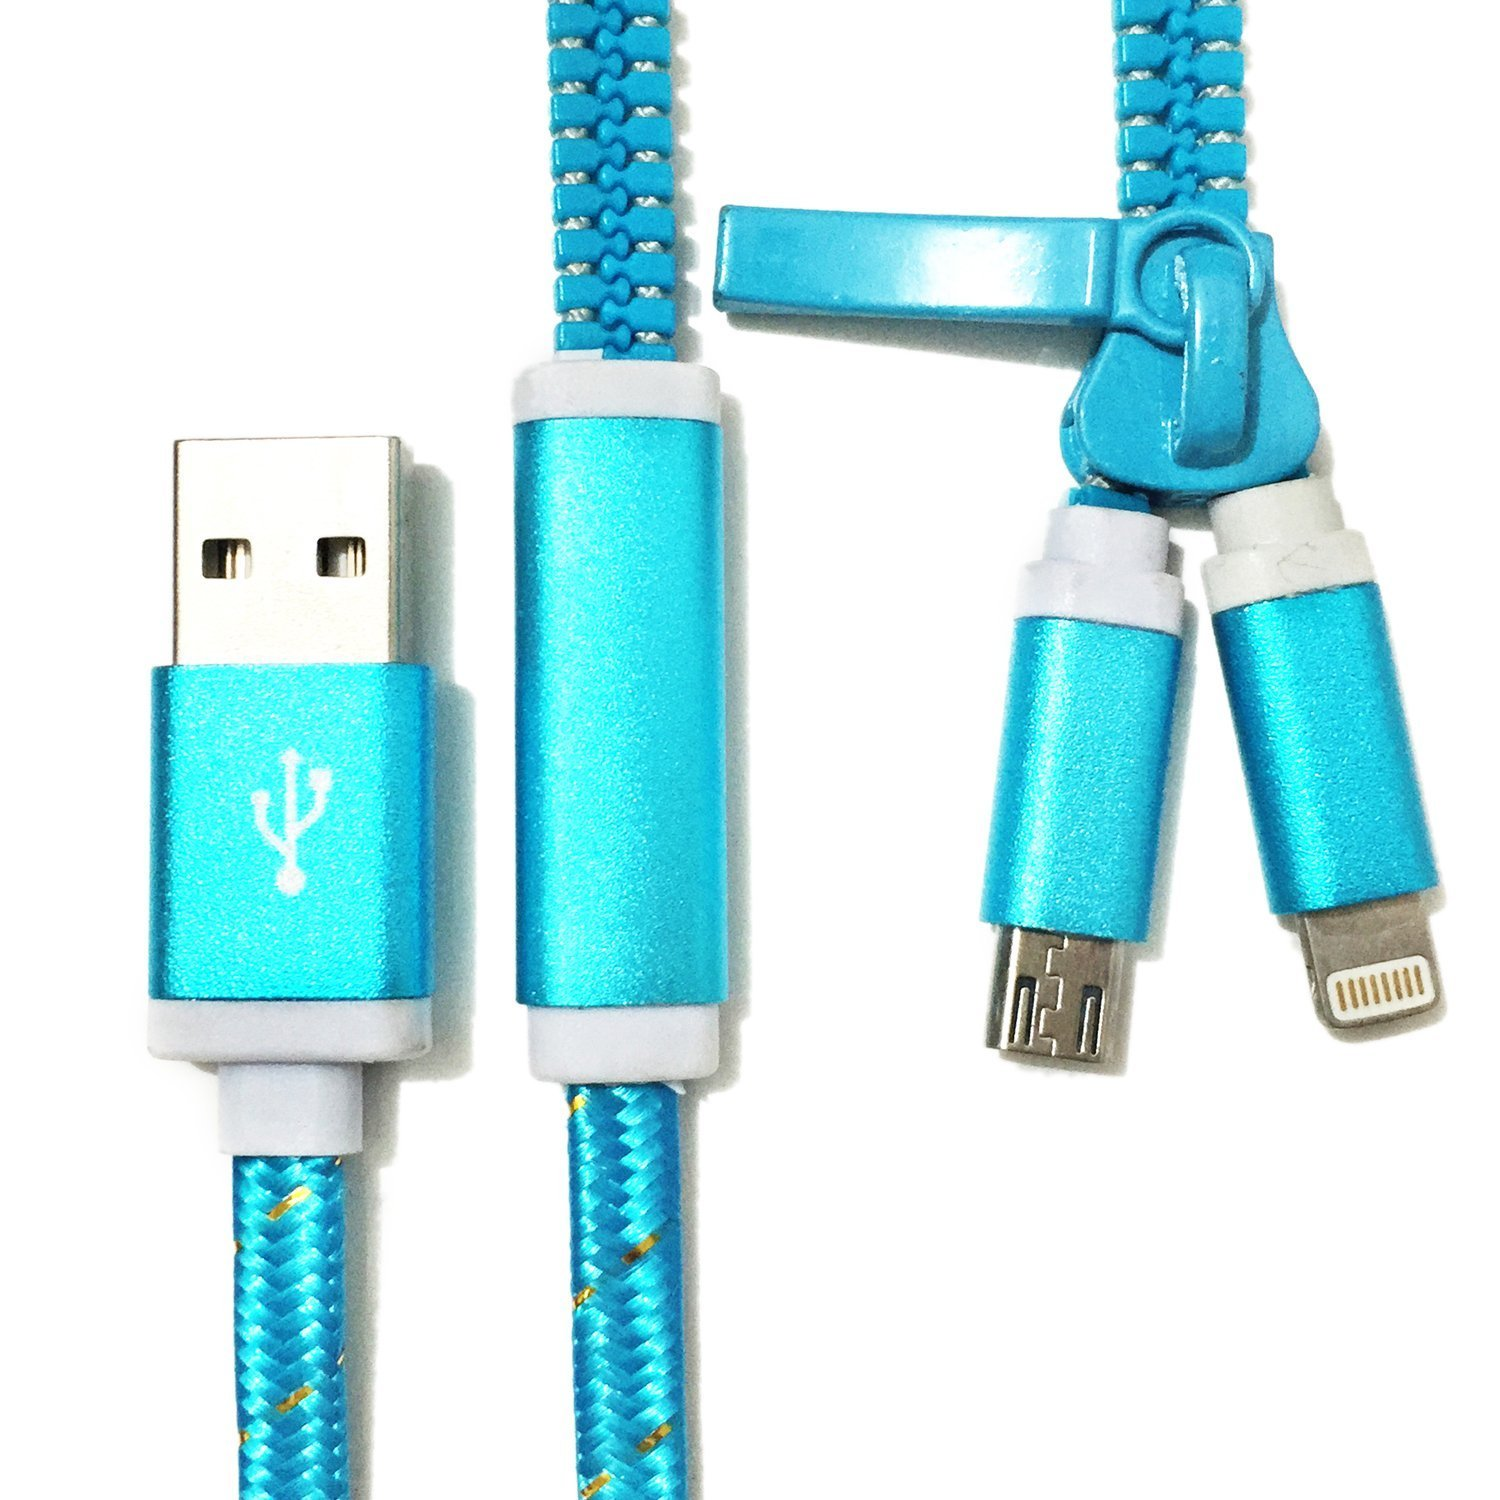 2 in 1, MYLB USB Dual Zip USB Charger Cable for iPhone: Amazon.co.uk ...